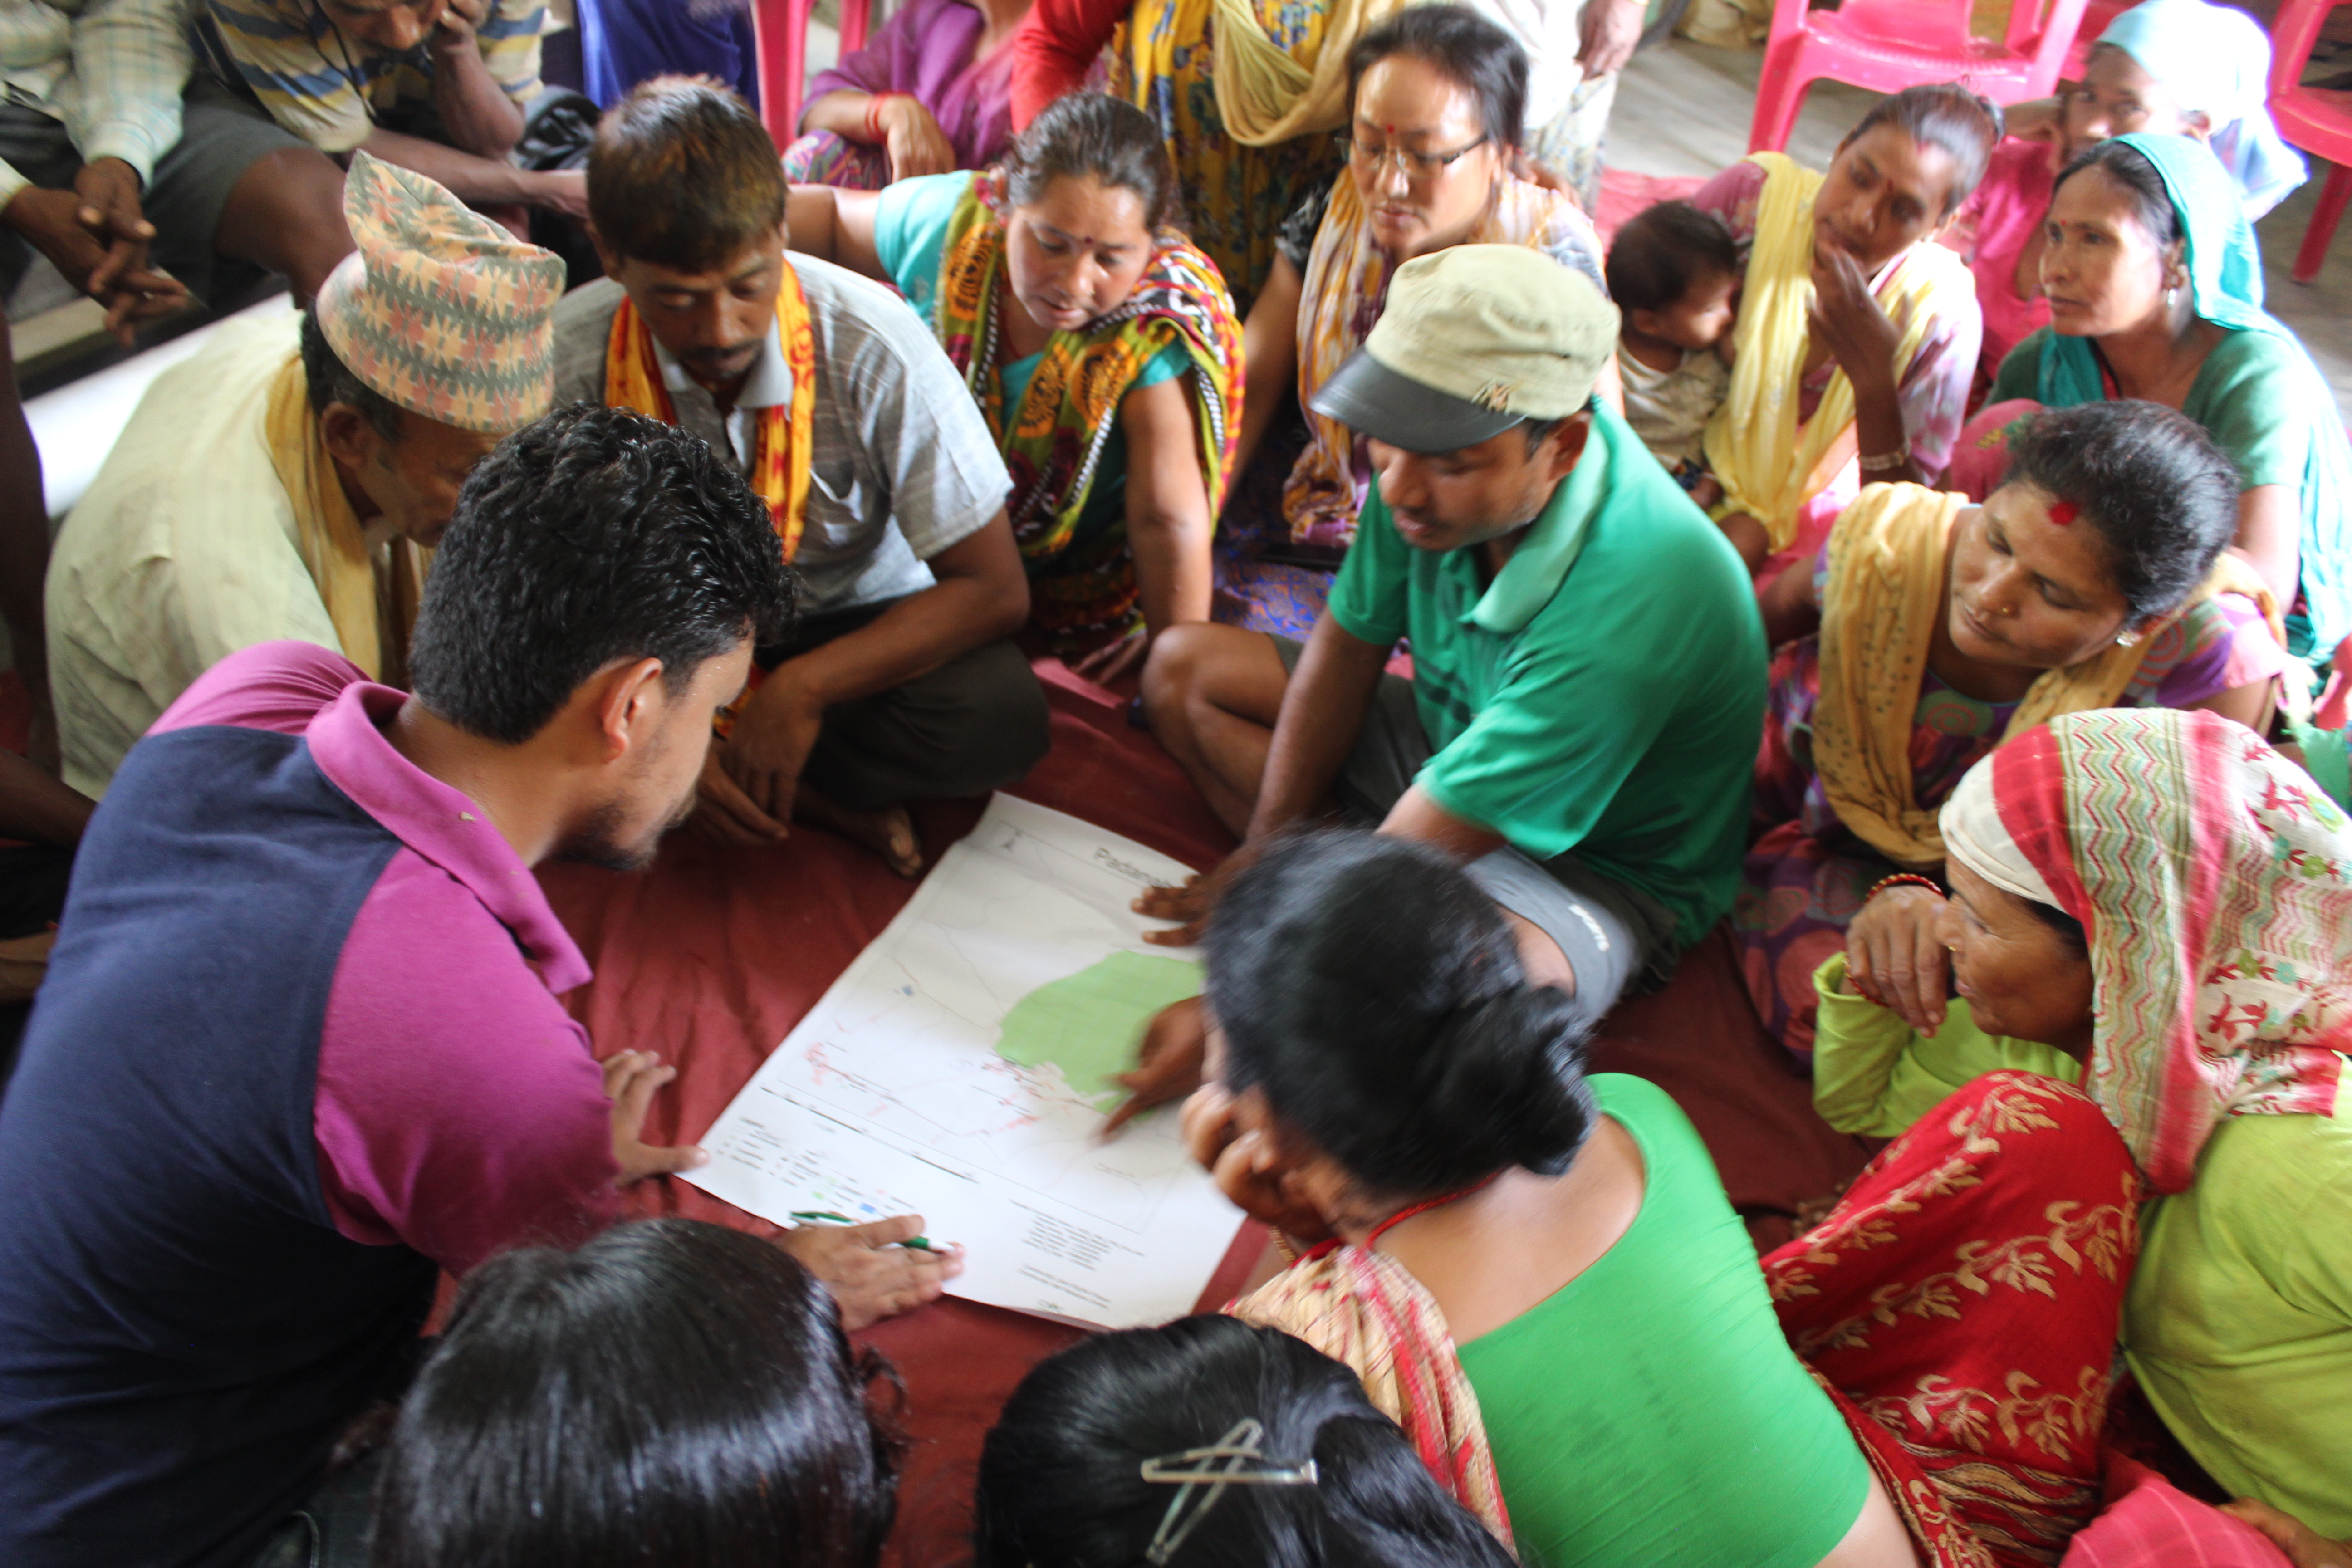 Preparing a village map as part of making by-laws - Credit: Rasna Dhakal/Oxfam